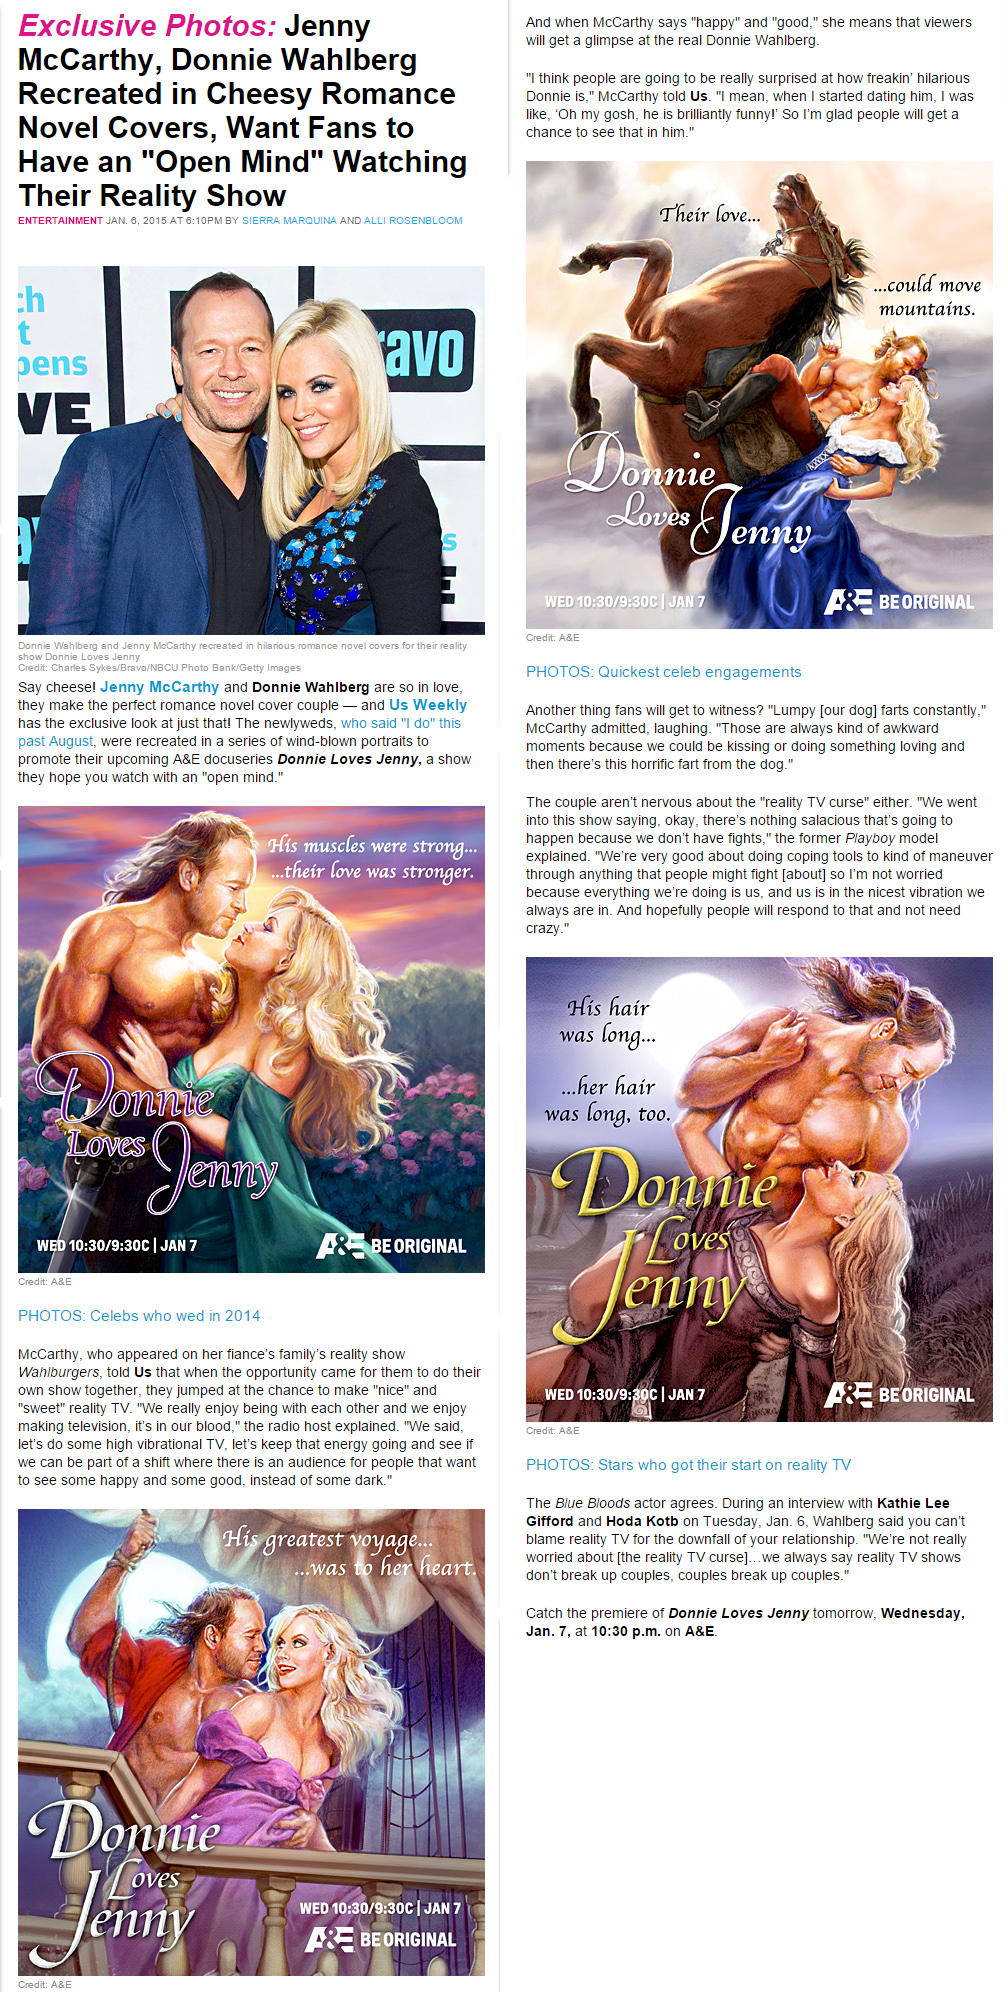 Donnie Loves Jenny Romance Novel Covers — Outlines Inc.